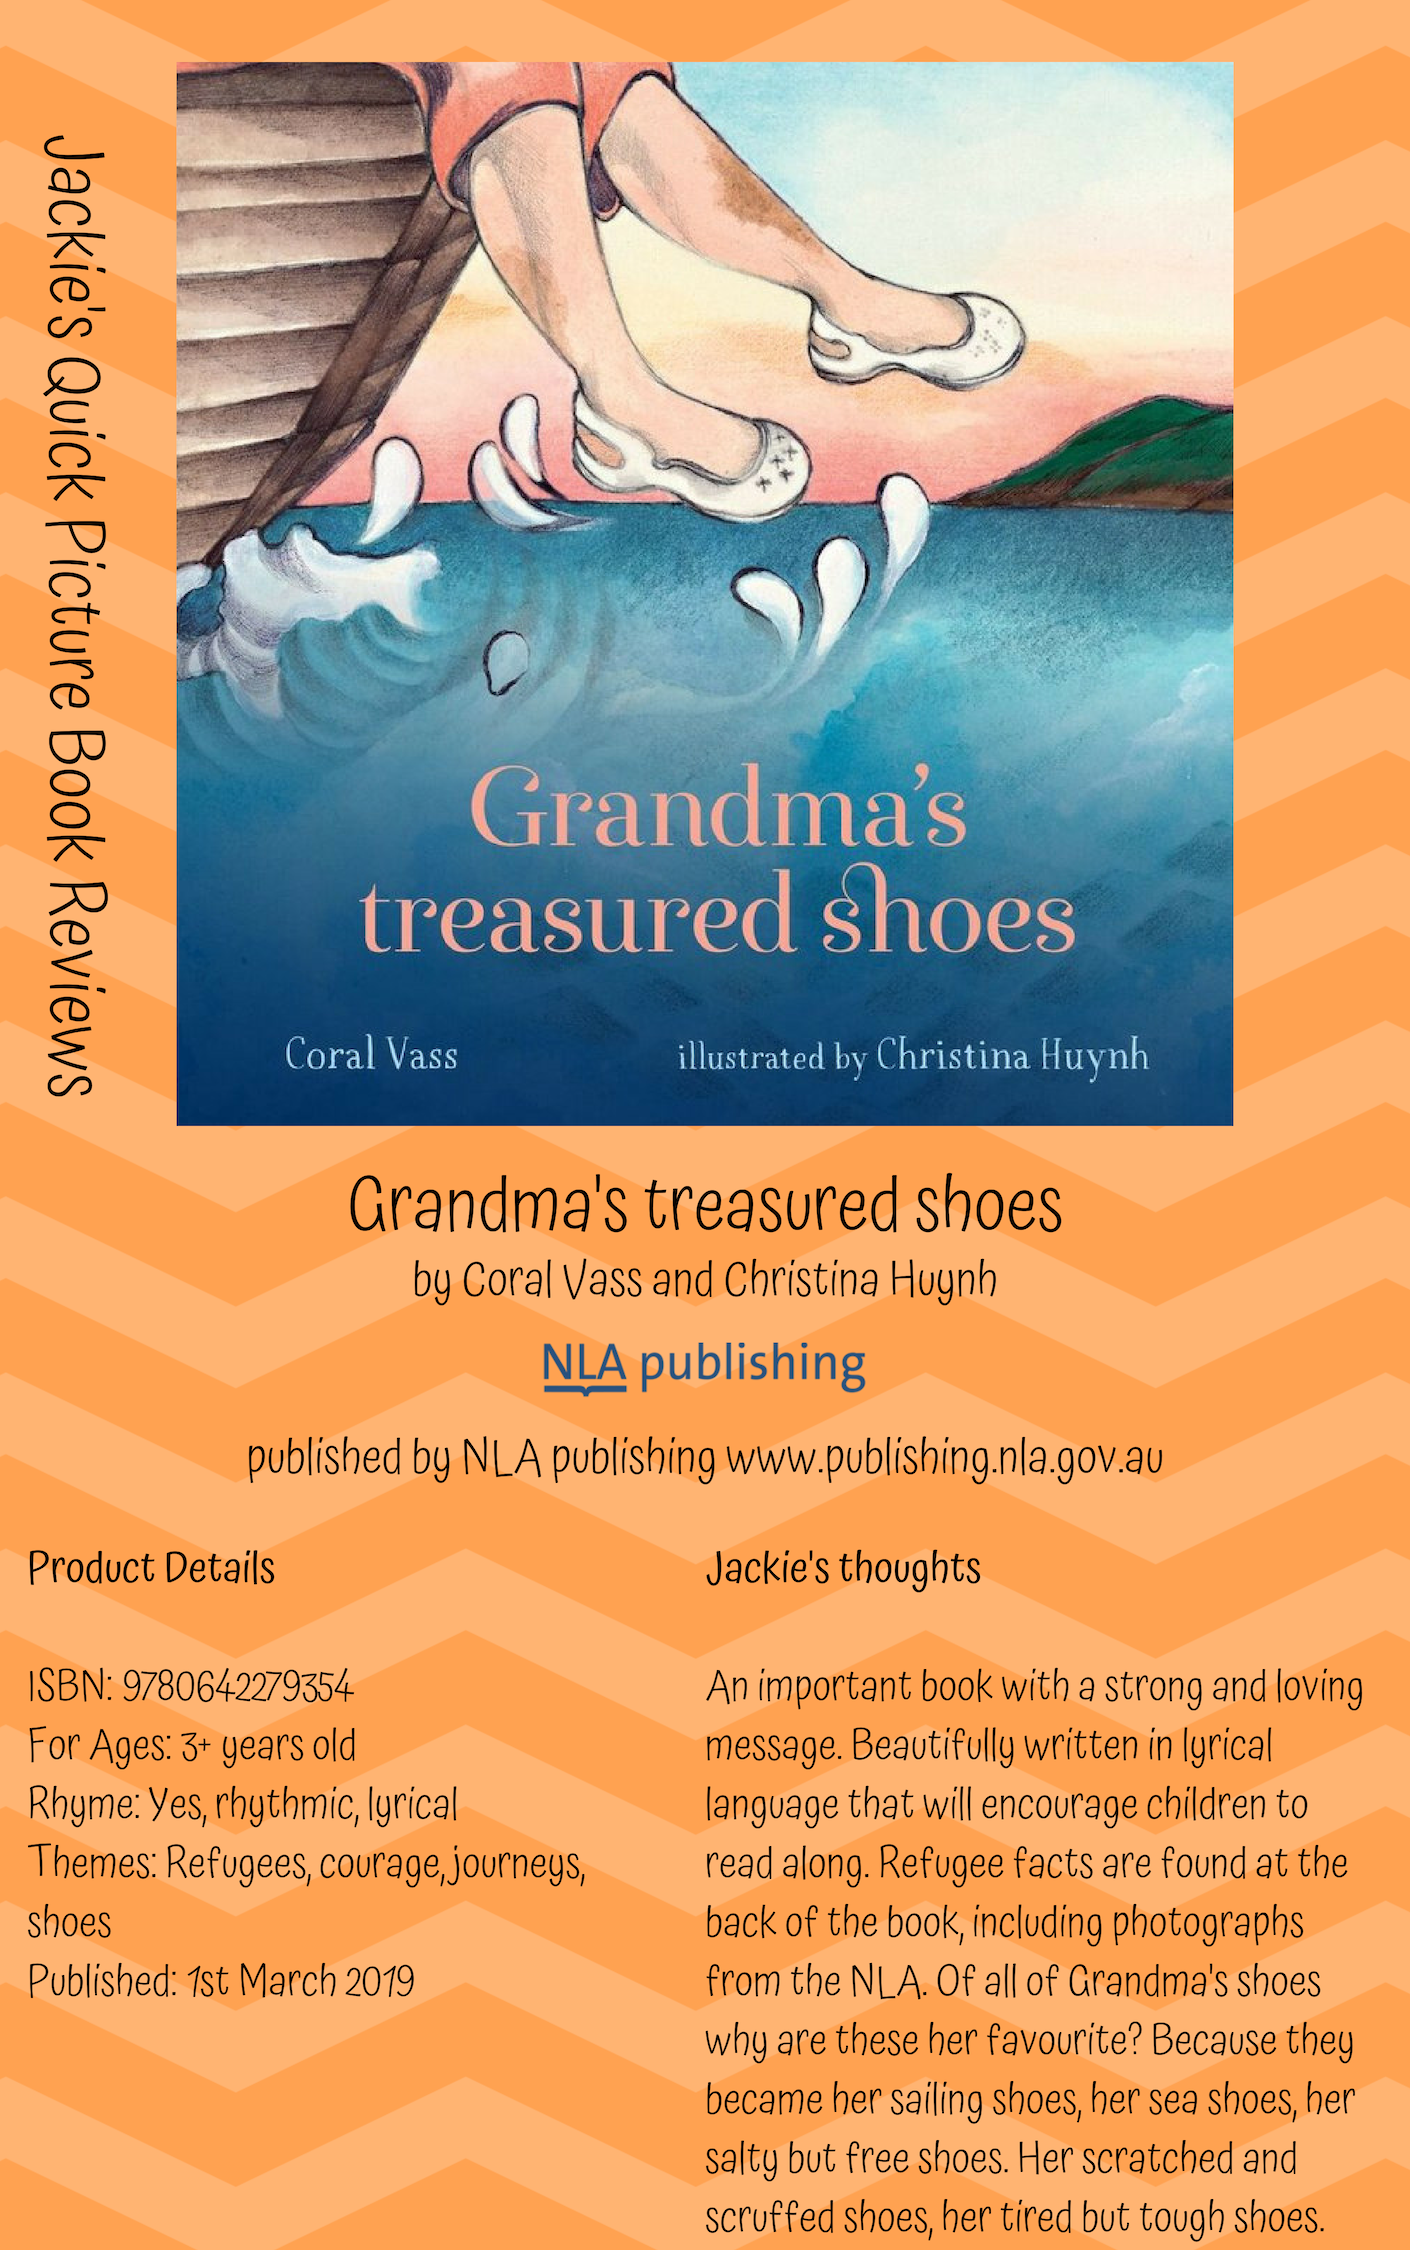 703 NLA - Grandma's treasured shoes